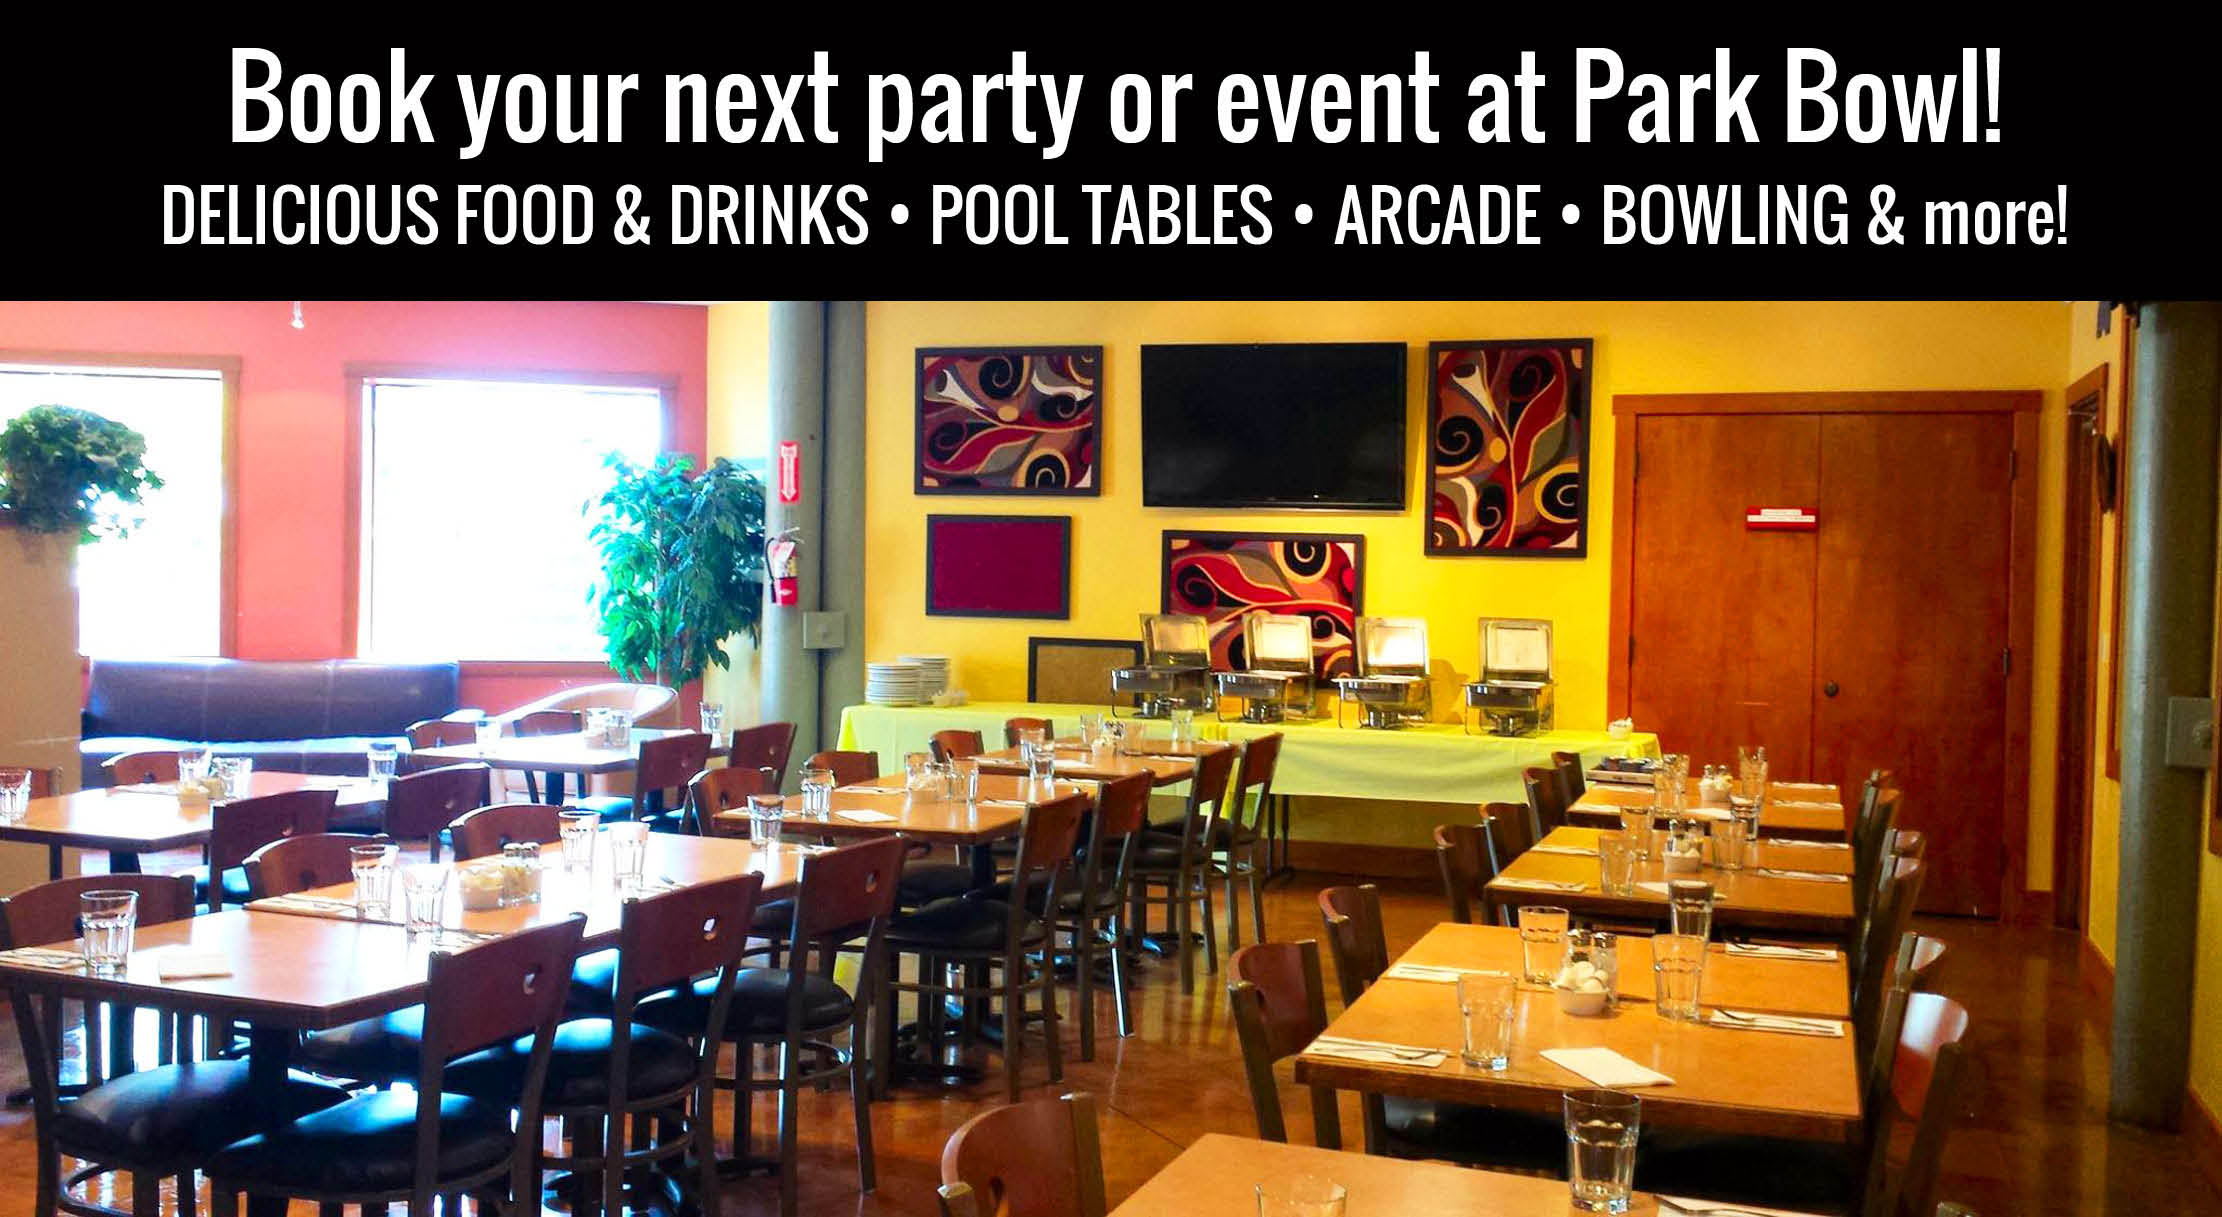 Bellingham party and group events free banquet room and party room at Park Bowl